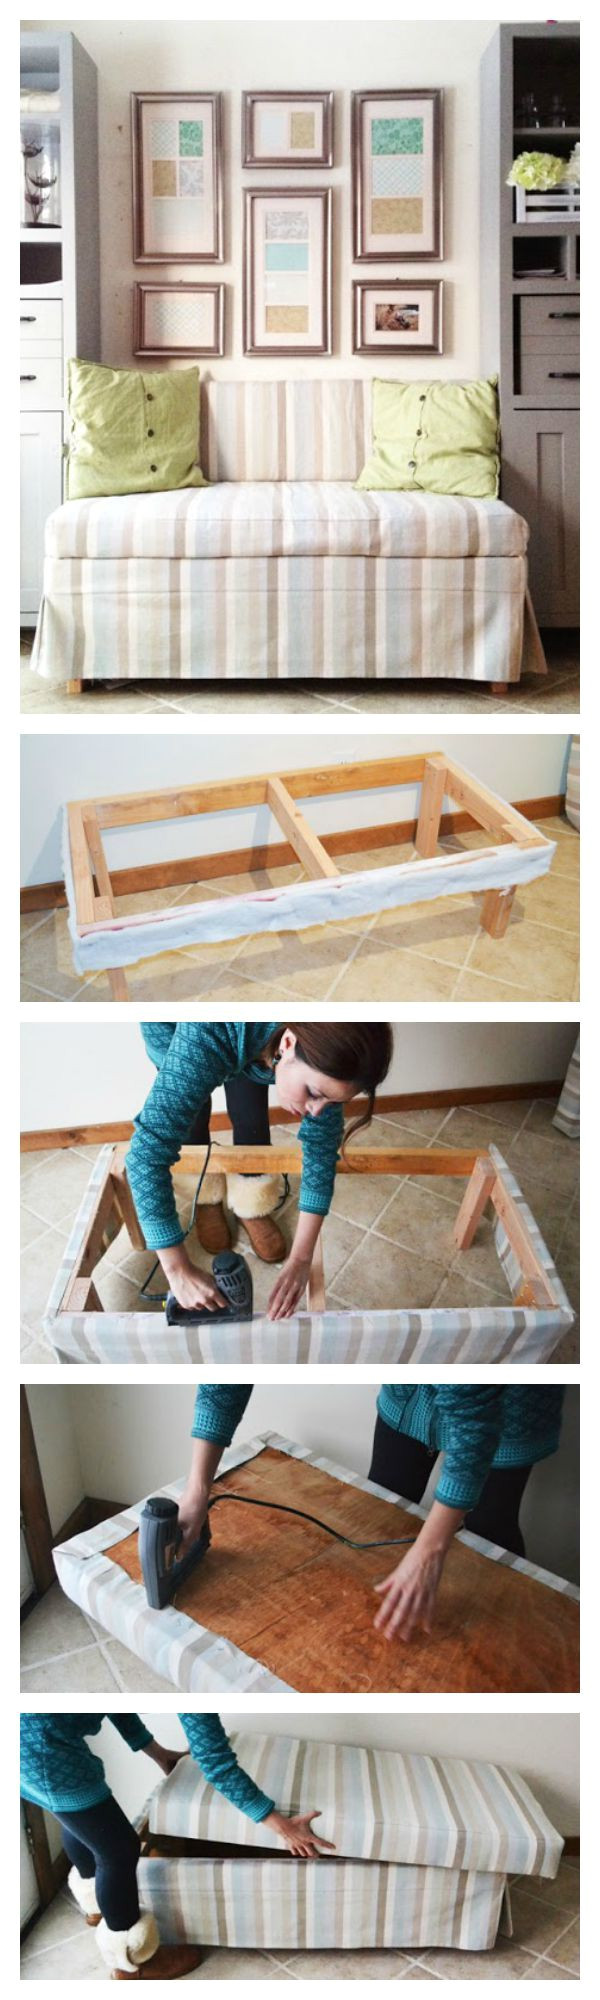 ana white build a 2x4 upholstered banquette seat free and easy diy project and a diy sofadiy upholstered storage